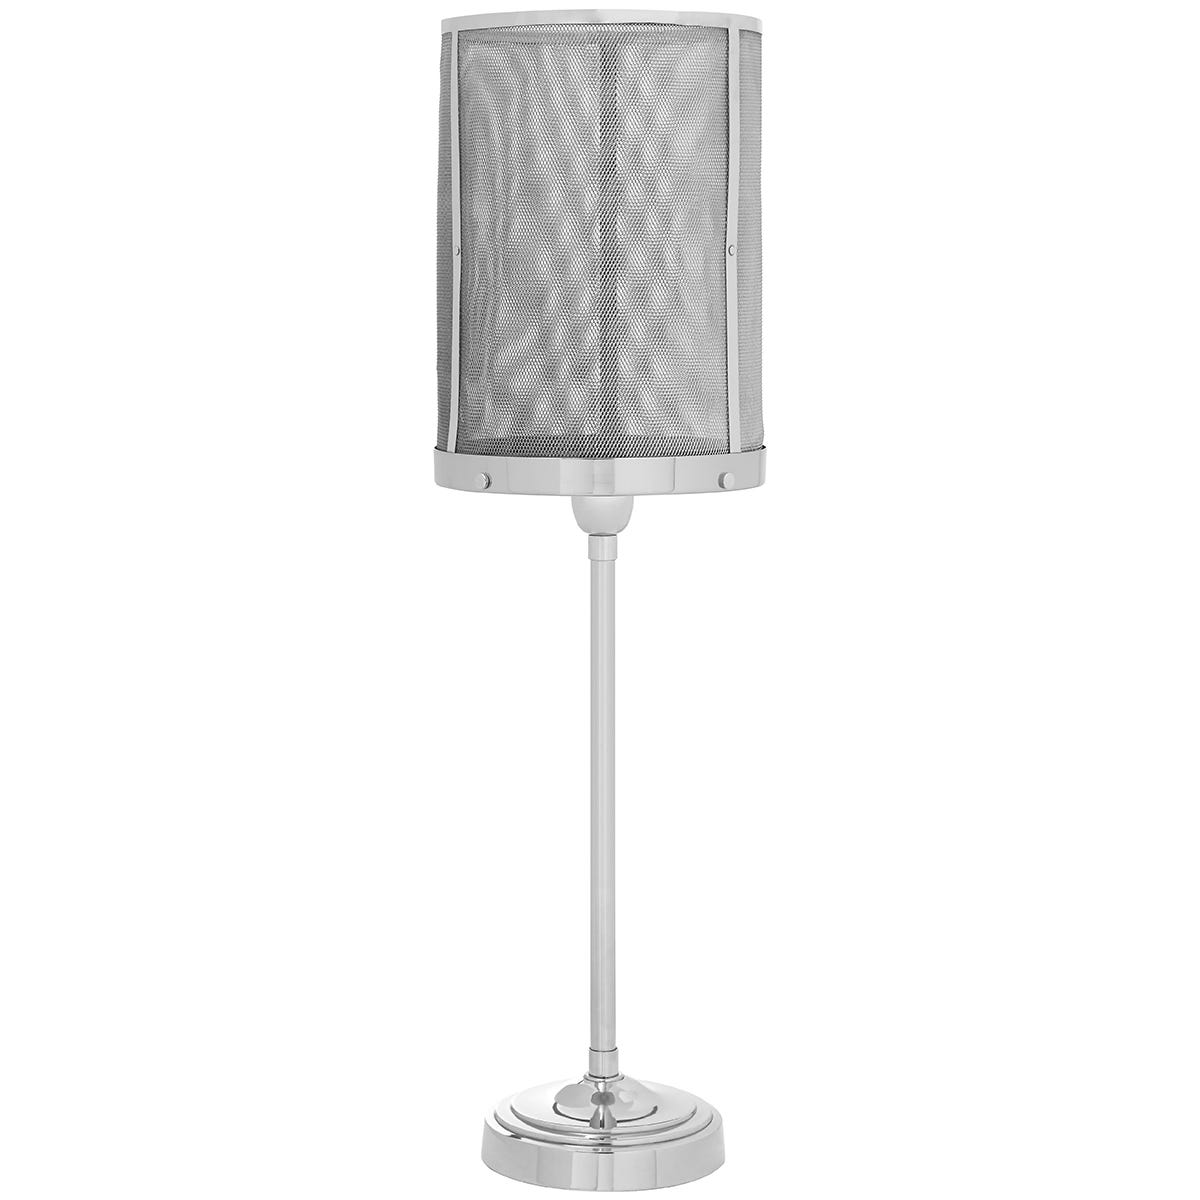 Premier Housewares Myles Table Lamp with Silver Finish Mesh Shade